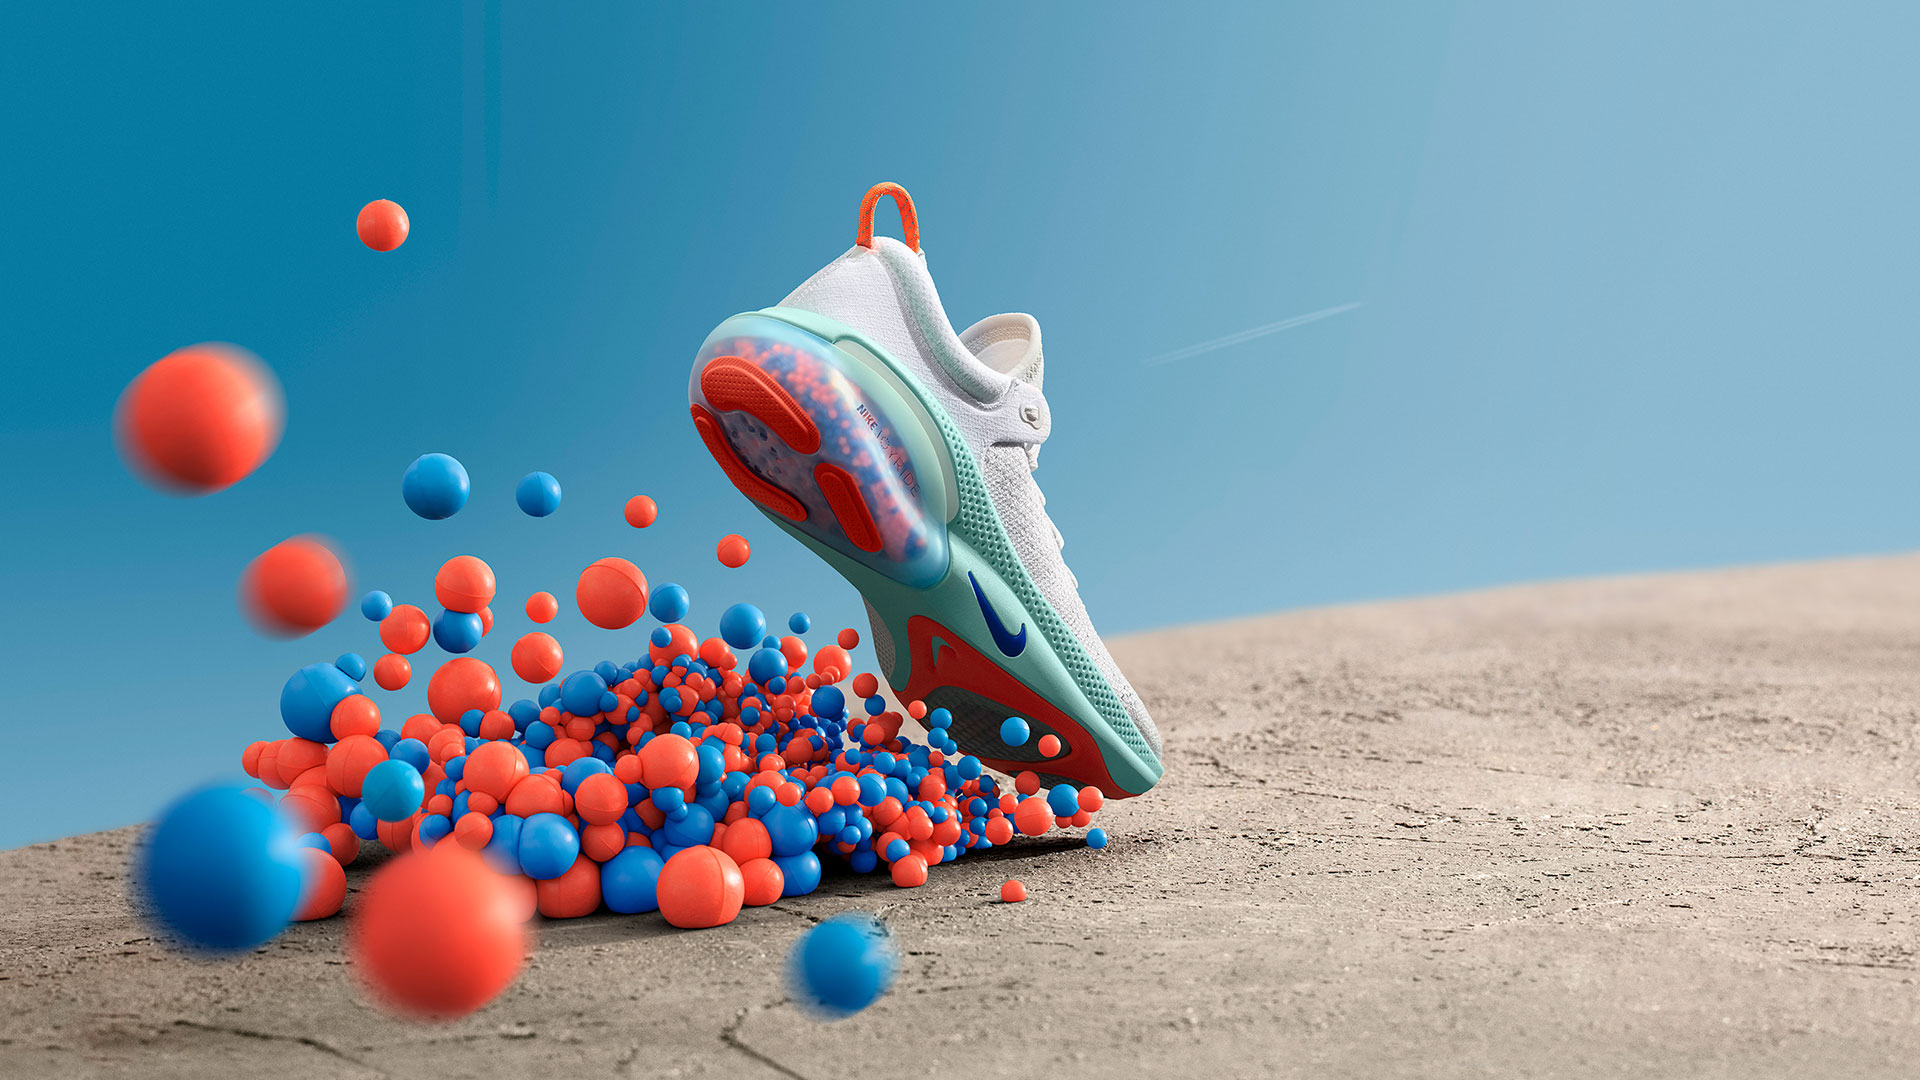 Nike Joyride: Get the Stepping-in-Sand, Sitting-in-a-Bean-Bag Feel—But for Running